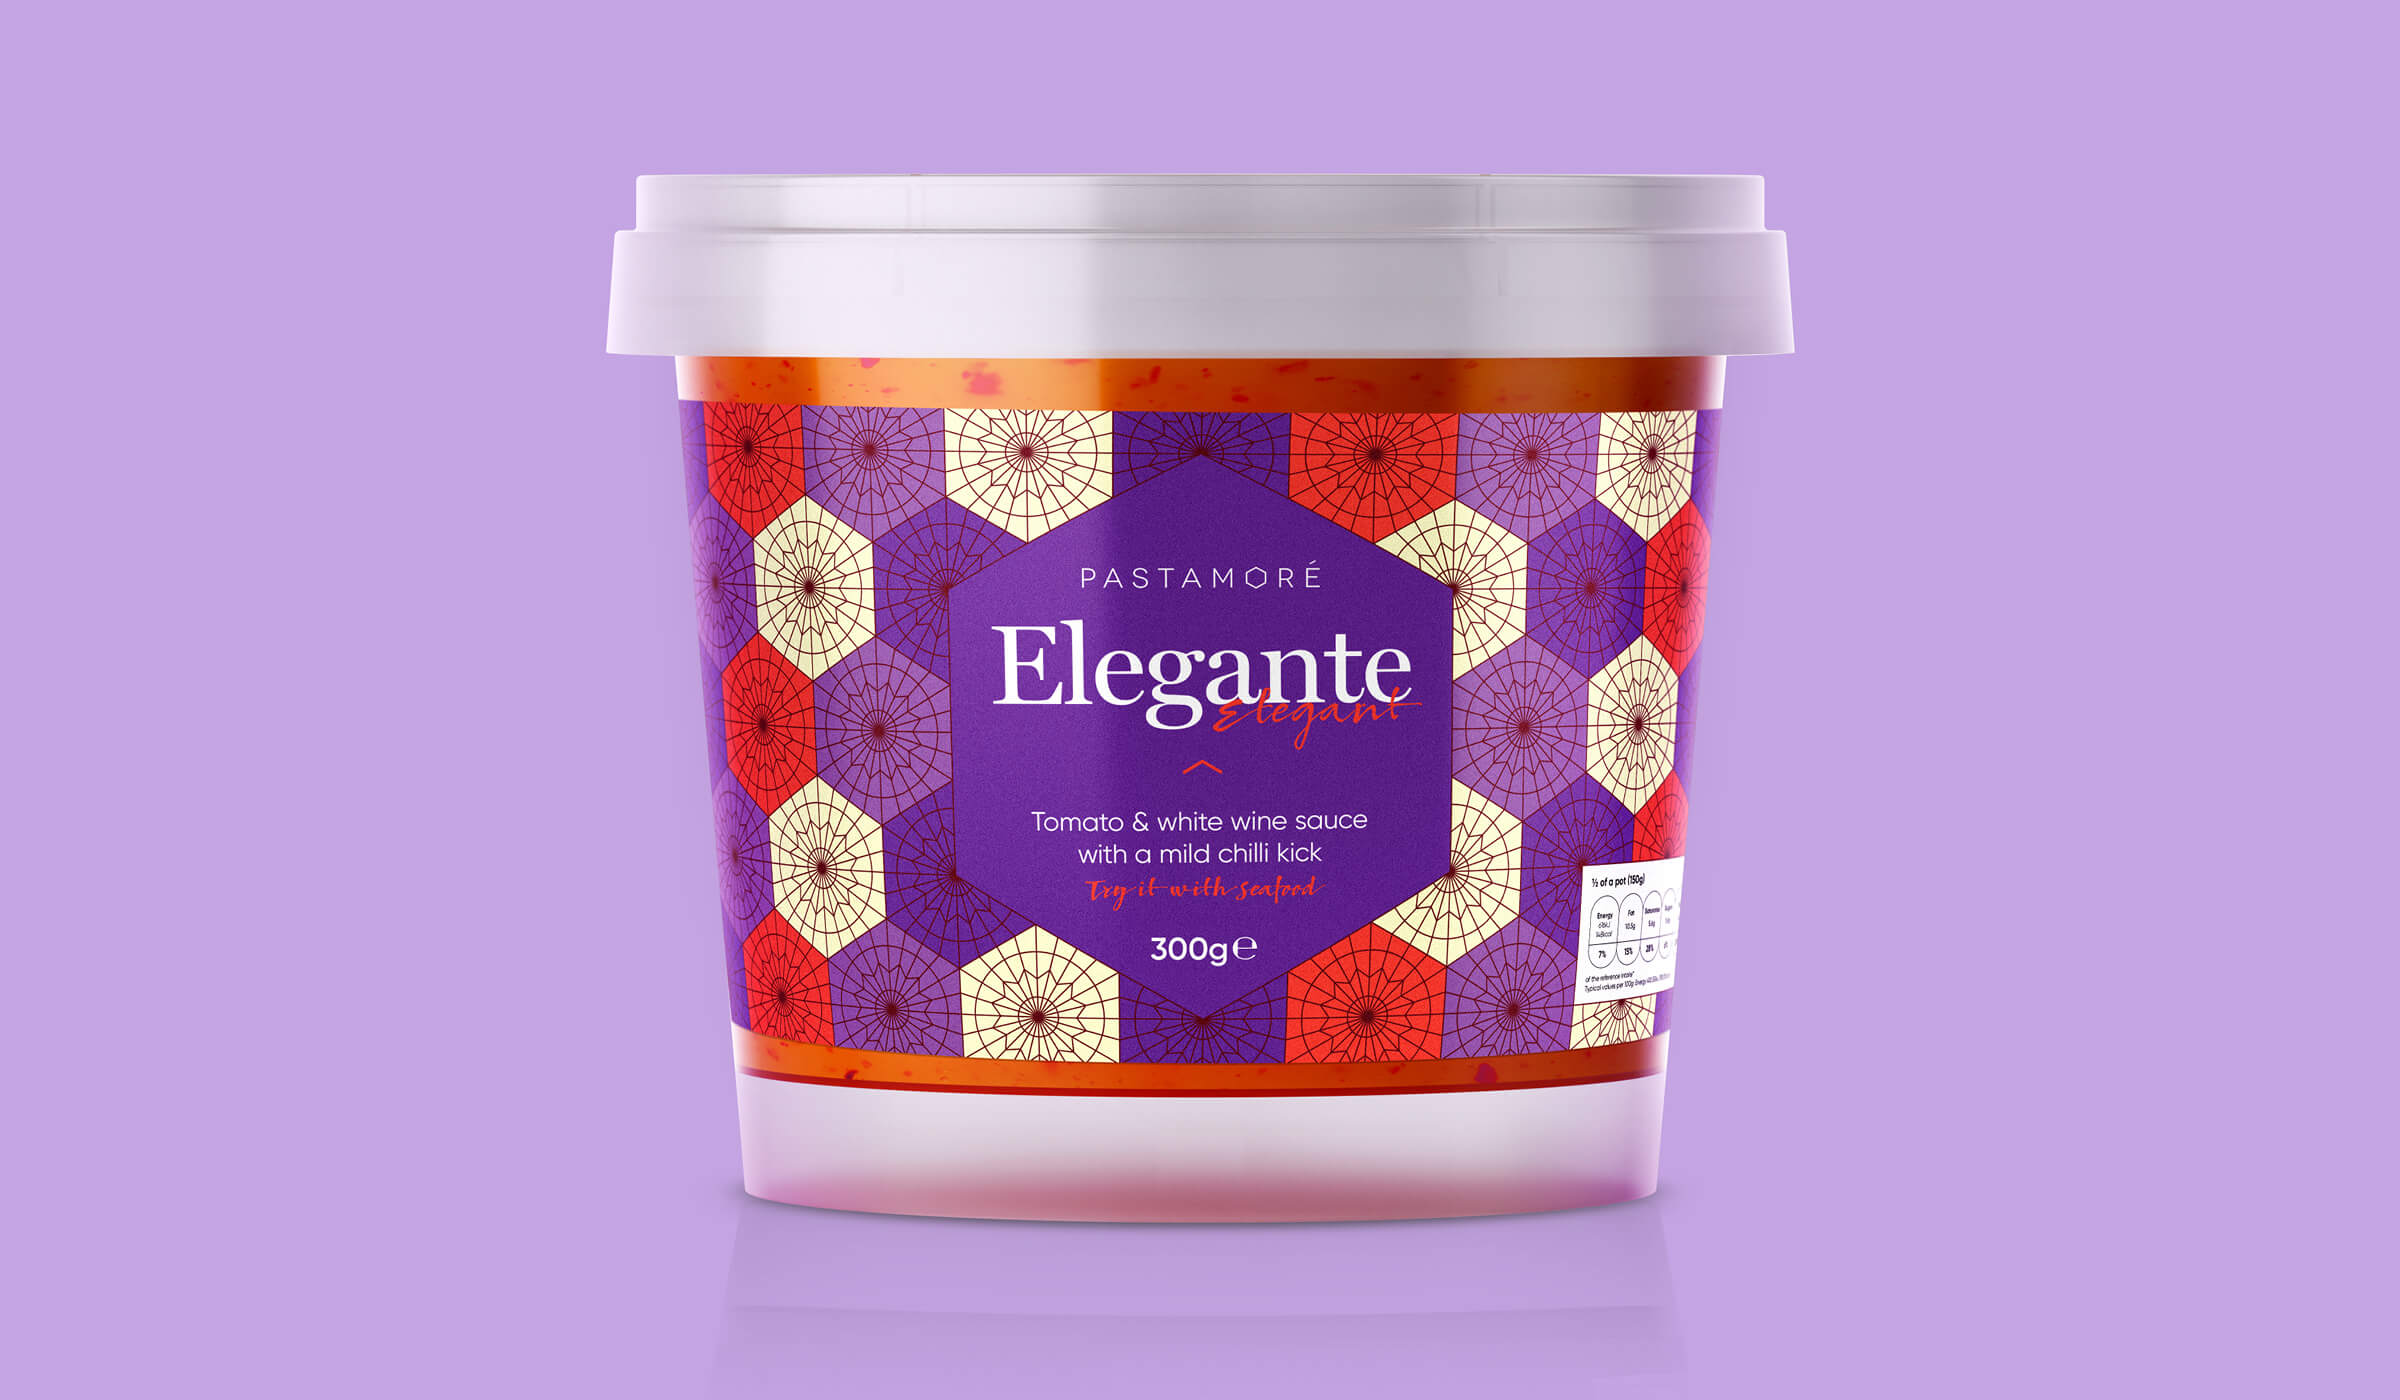 Pastamore Elegante packaging design